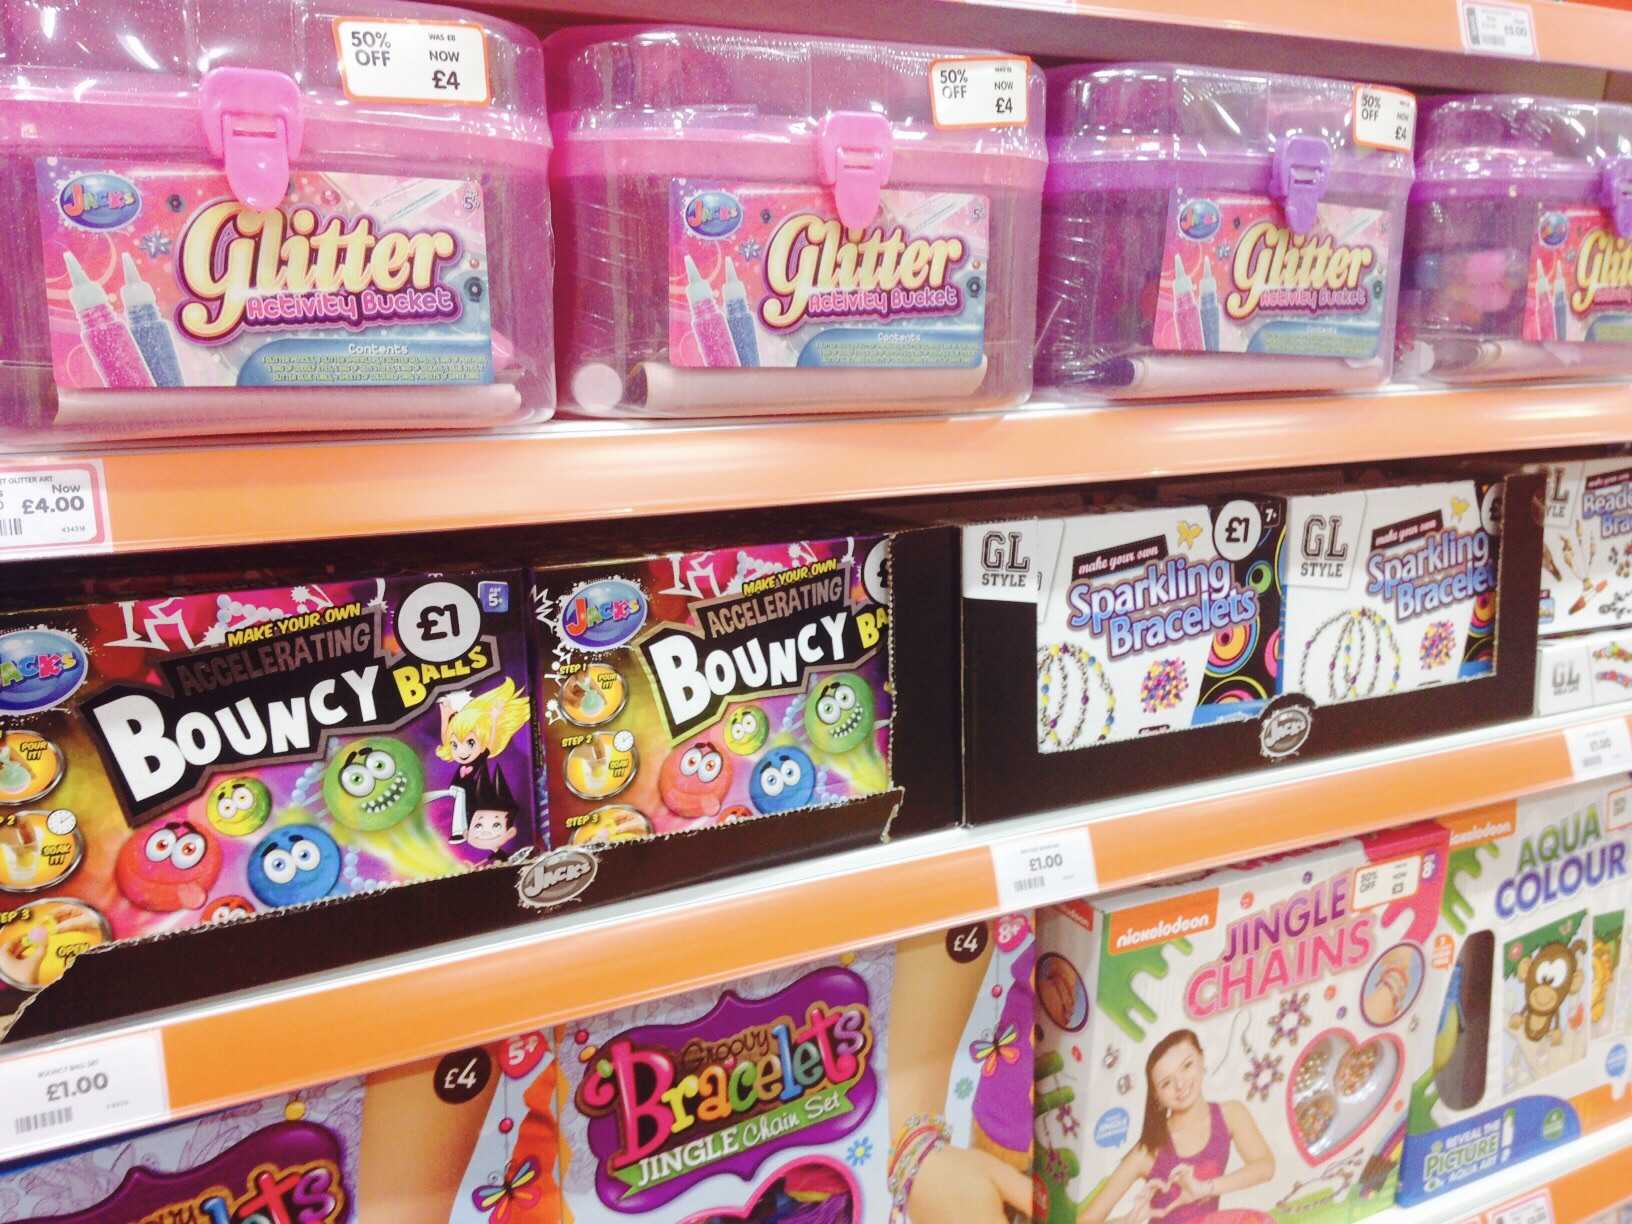 Glitter activity bucket only £4, other games £1